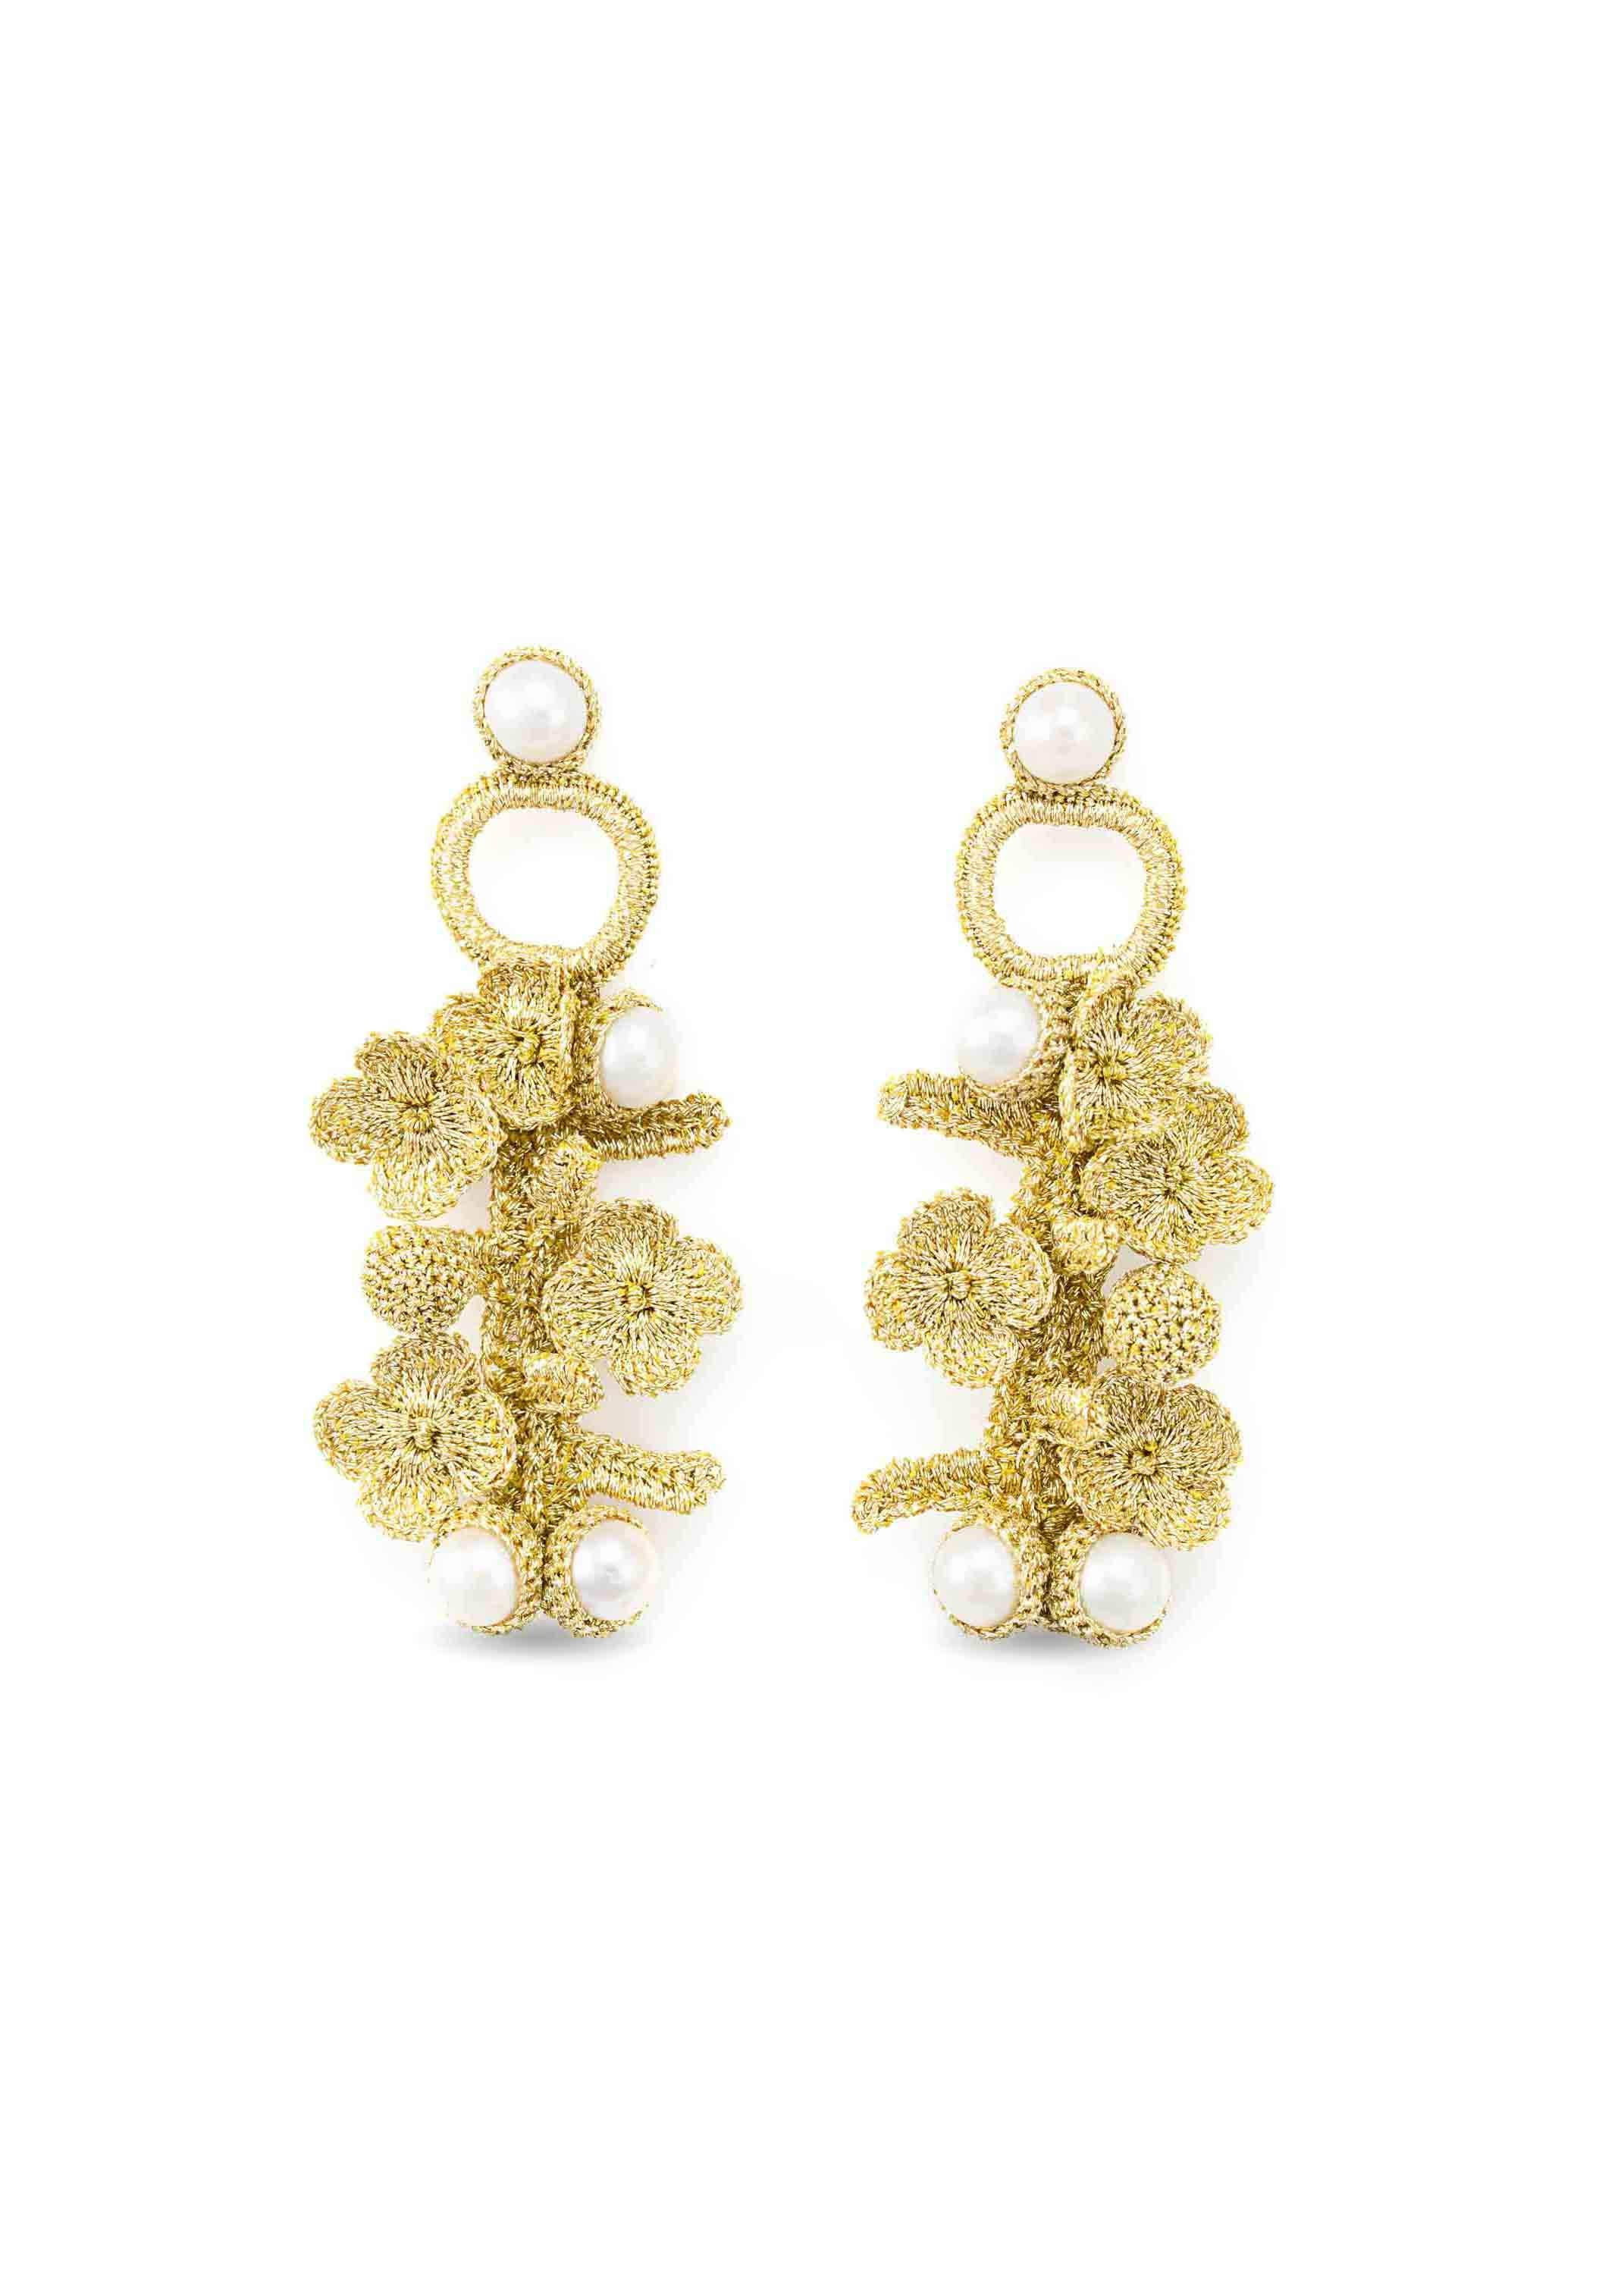 luxembourg earrings gold atelier godole